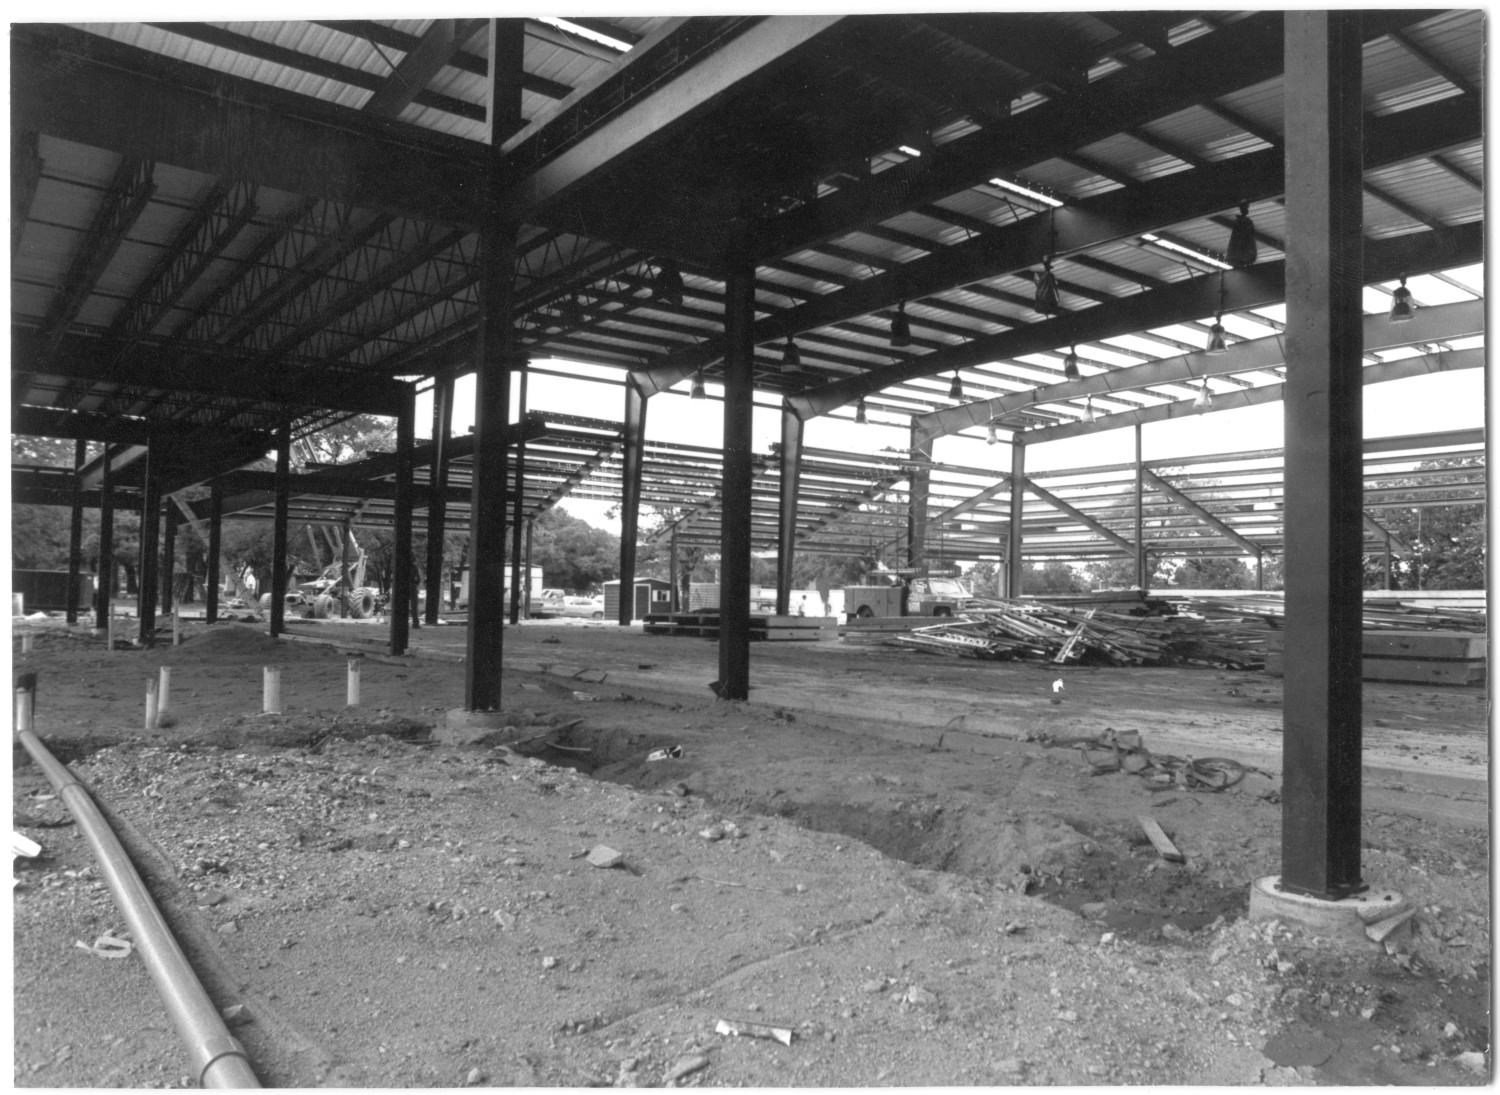 Woltman Activities Center under construction                                                                                                      [Sequence #]: 1 of 1